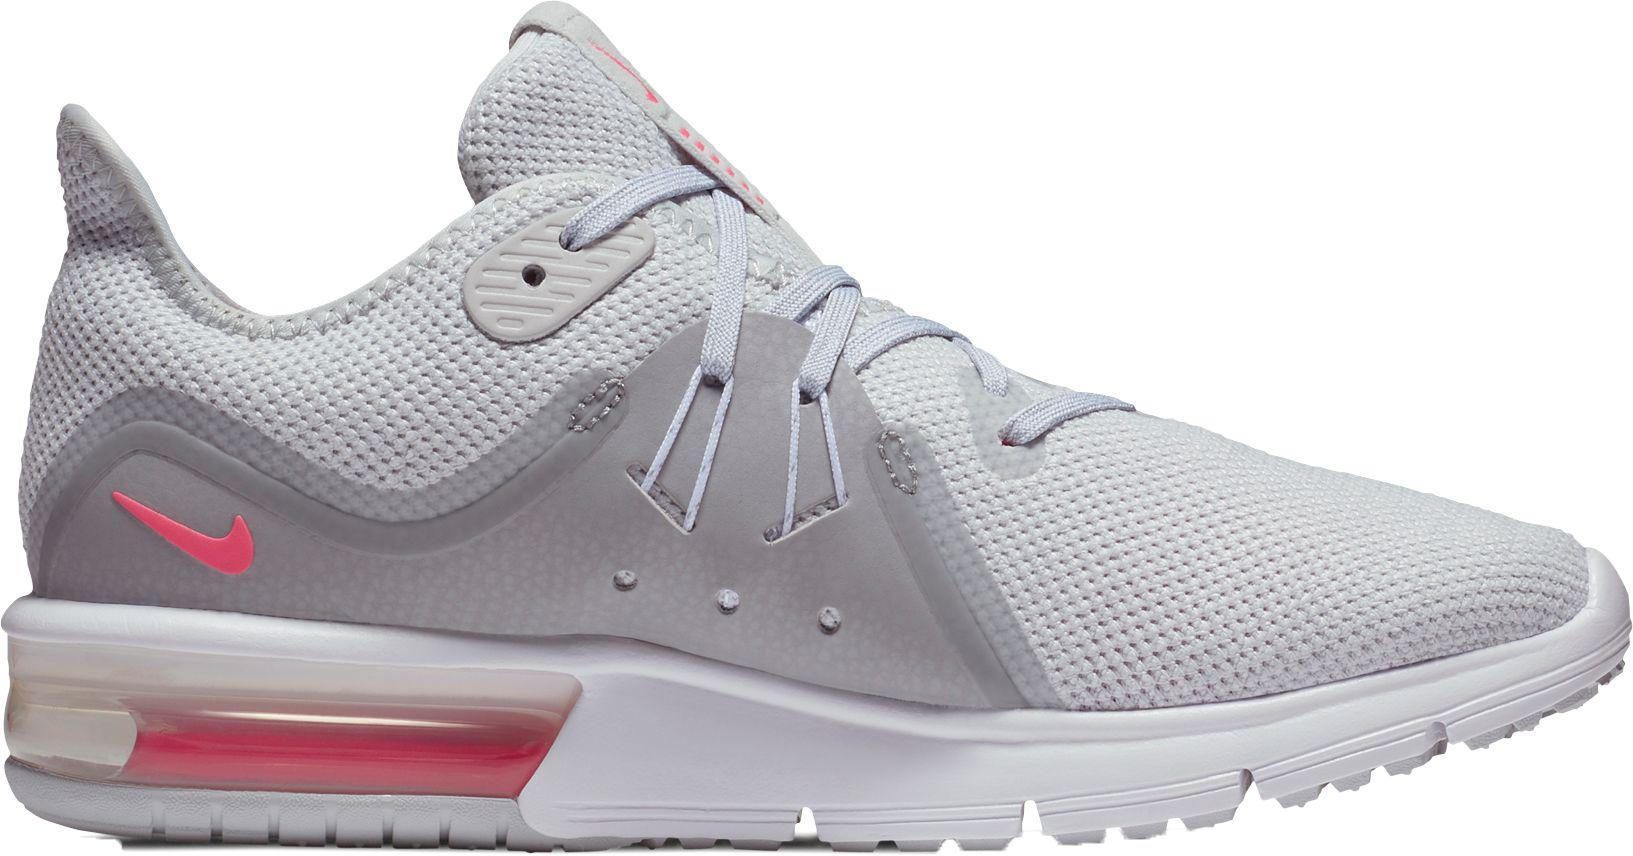 54e85f3f8c Lyst - Nike Air Max Sequent 3 Running Shoes in Gray